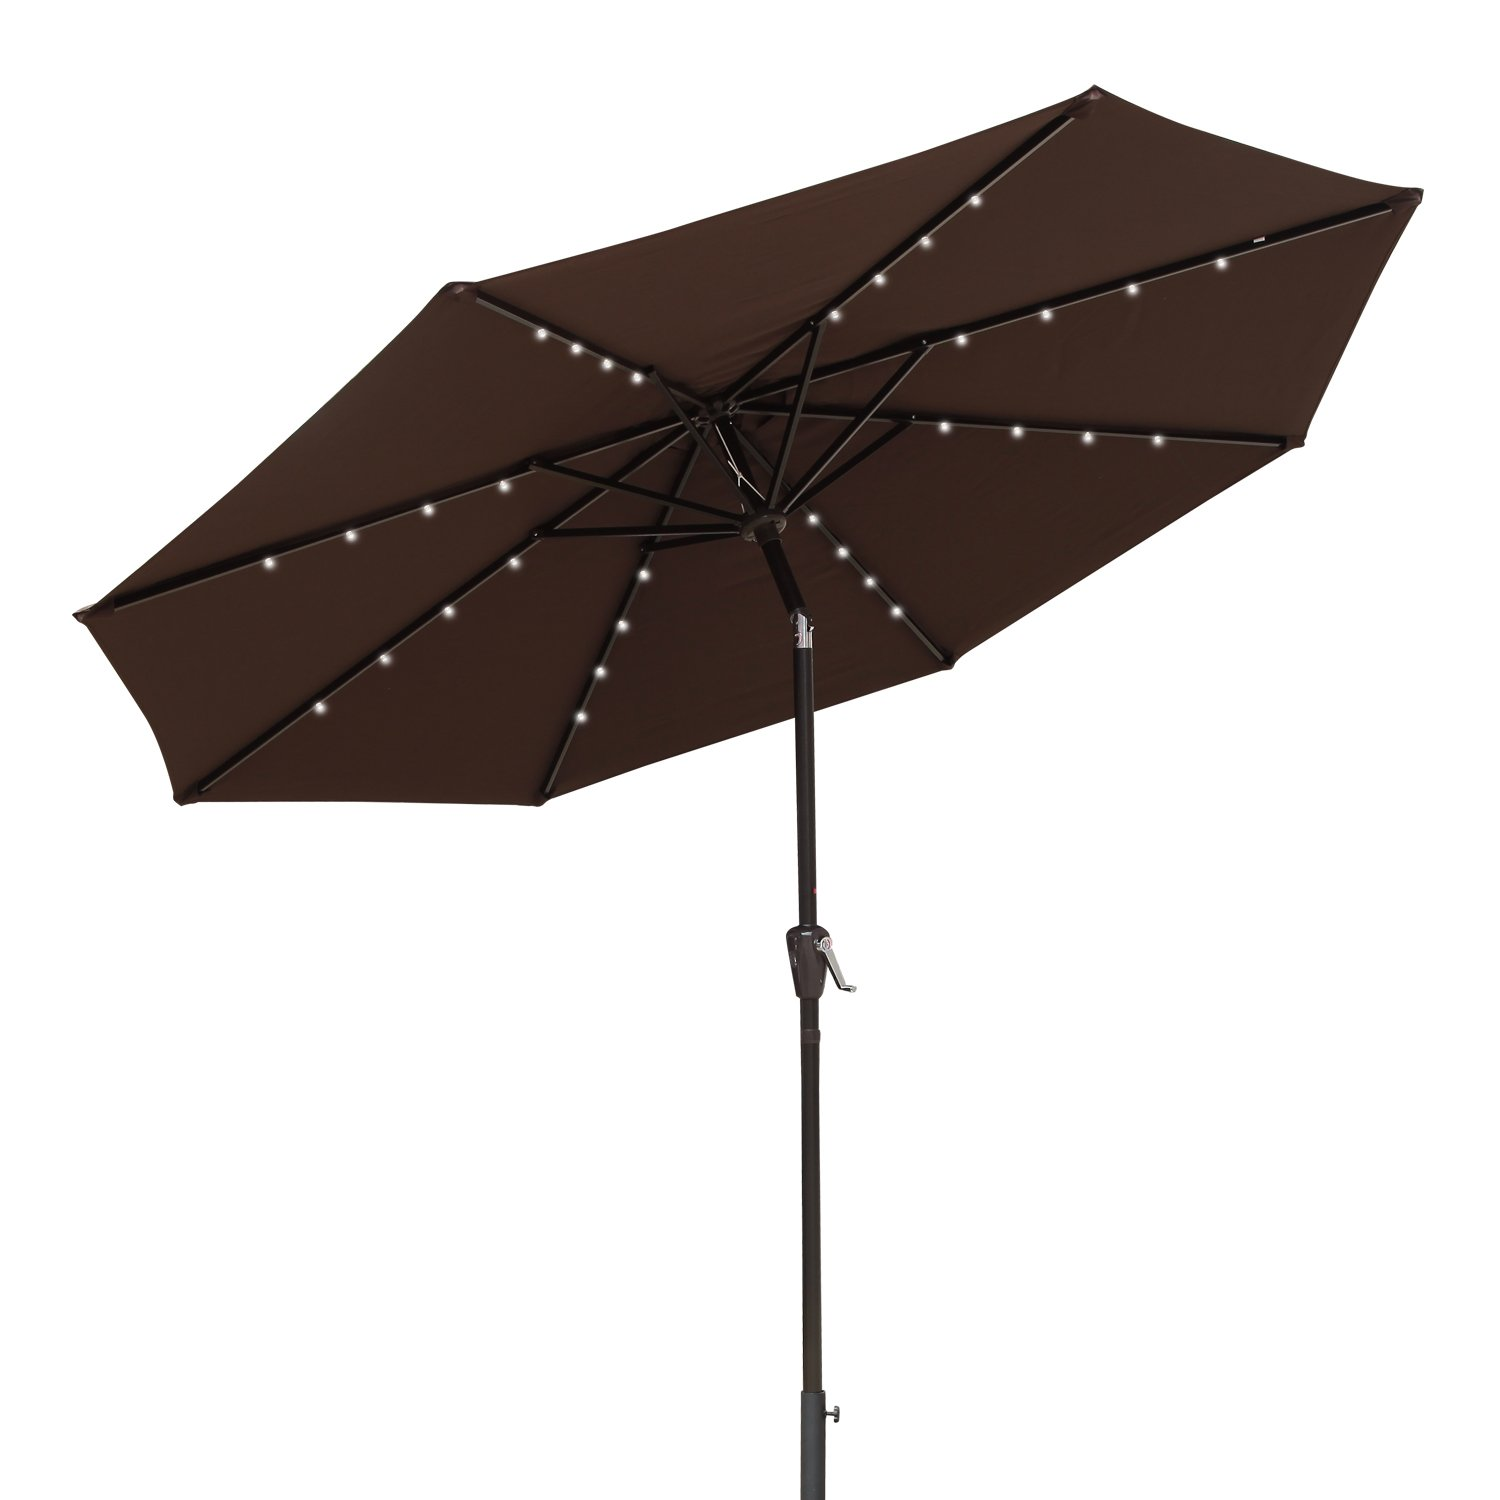 Featured deals in Patio Umbrellas - Patio Umbrellas Amazon.com